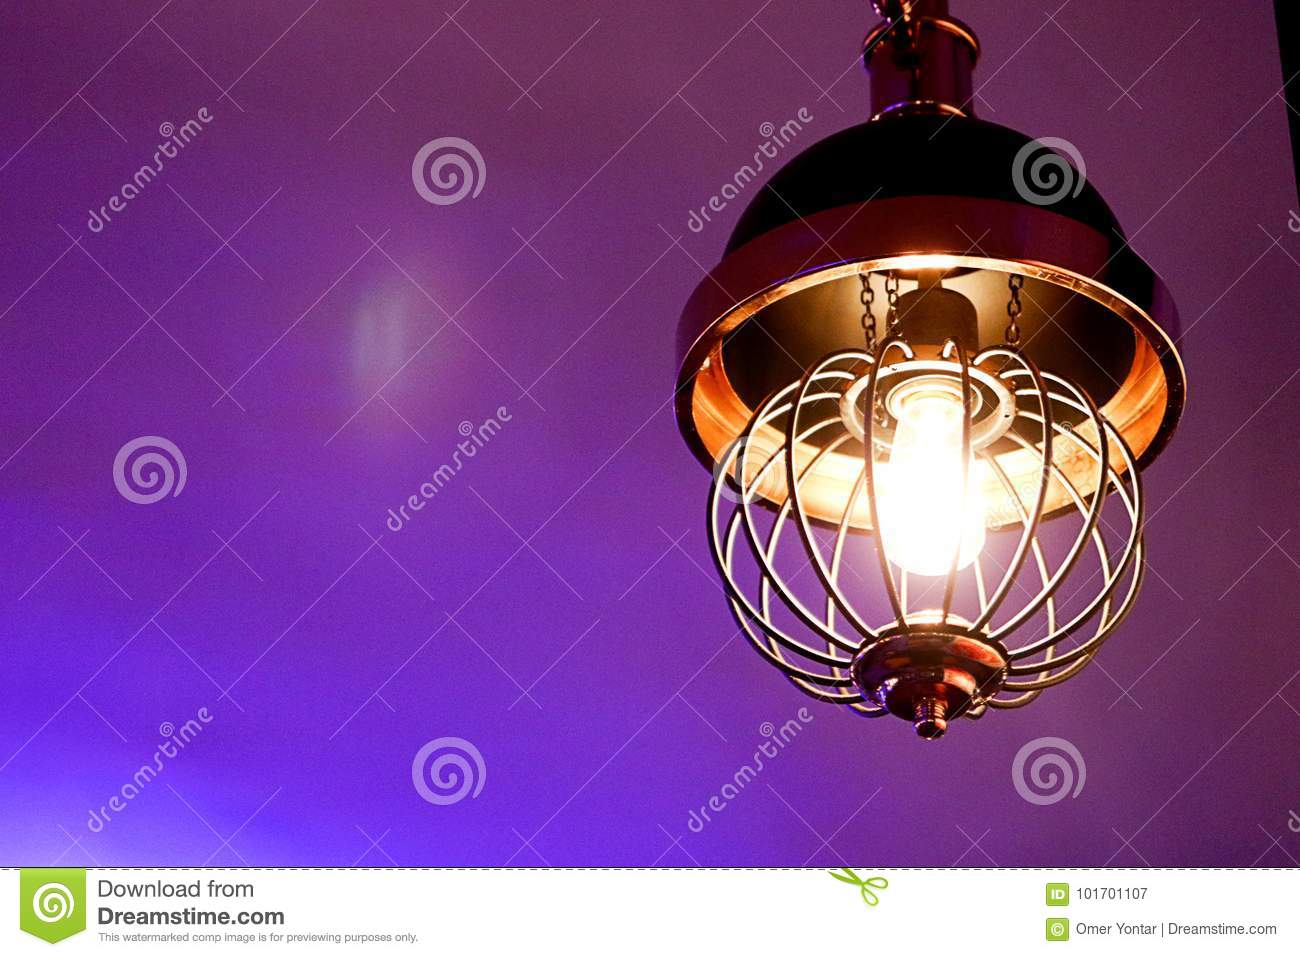 Decorative Lamps For Home Decoration